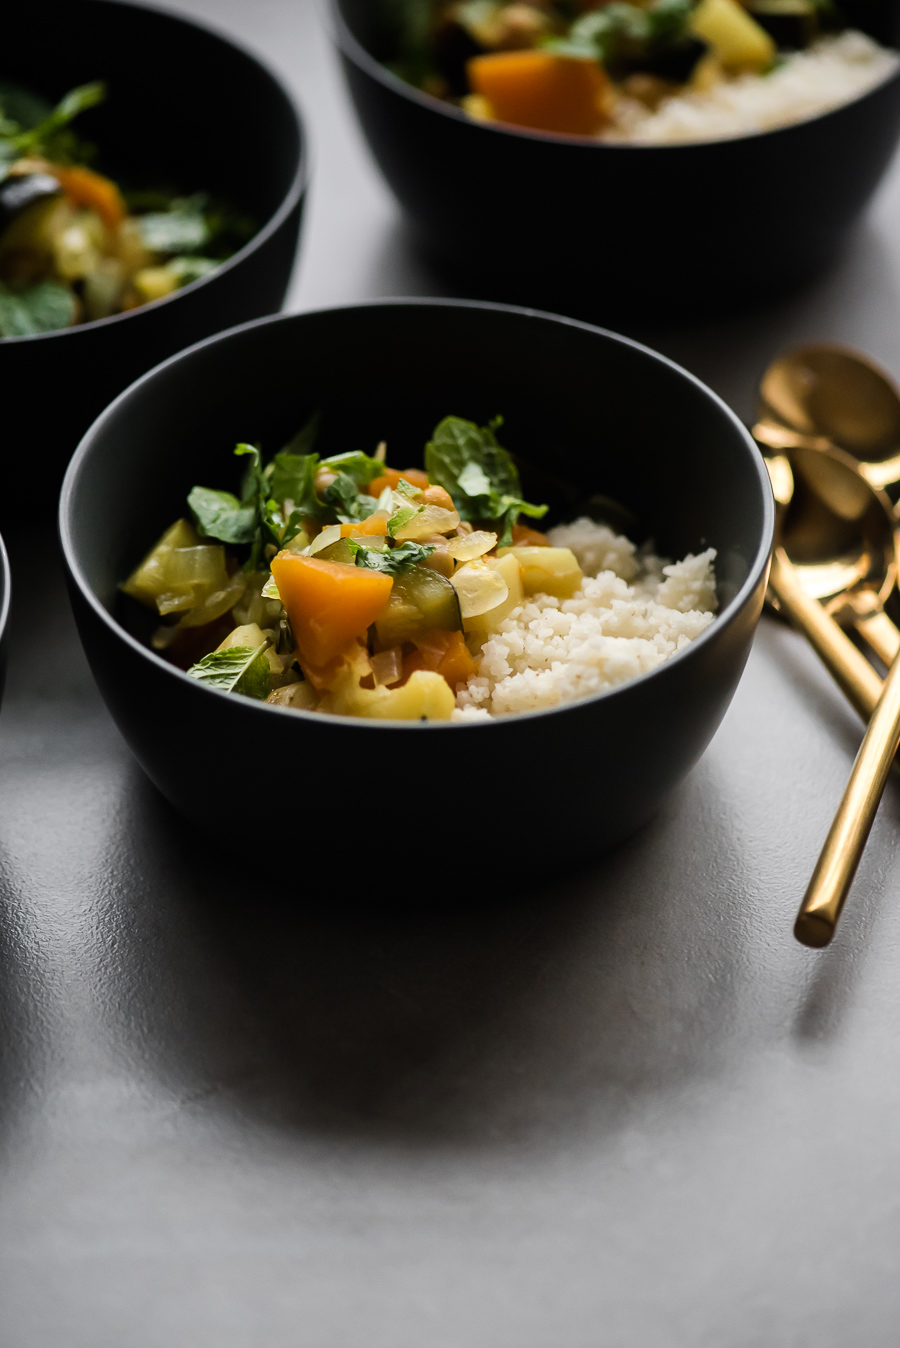 Moroccan Vegetable Stew with Couscous